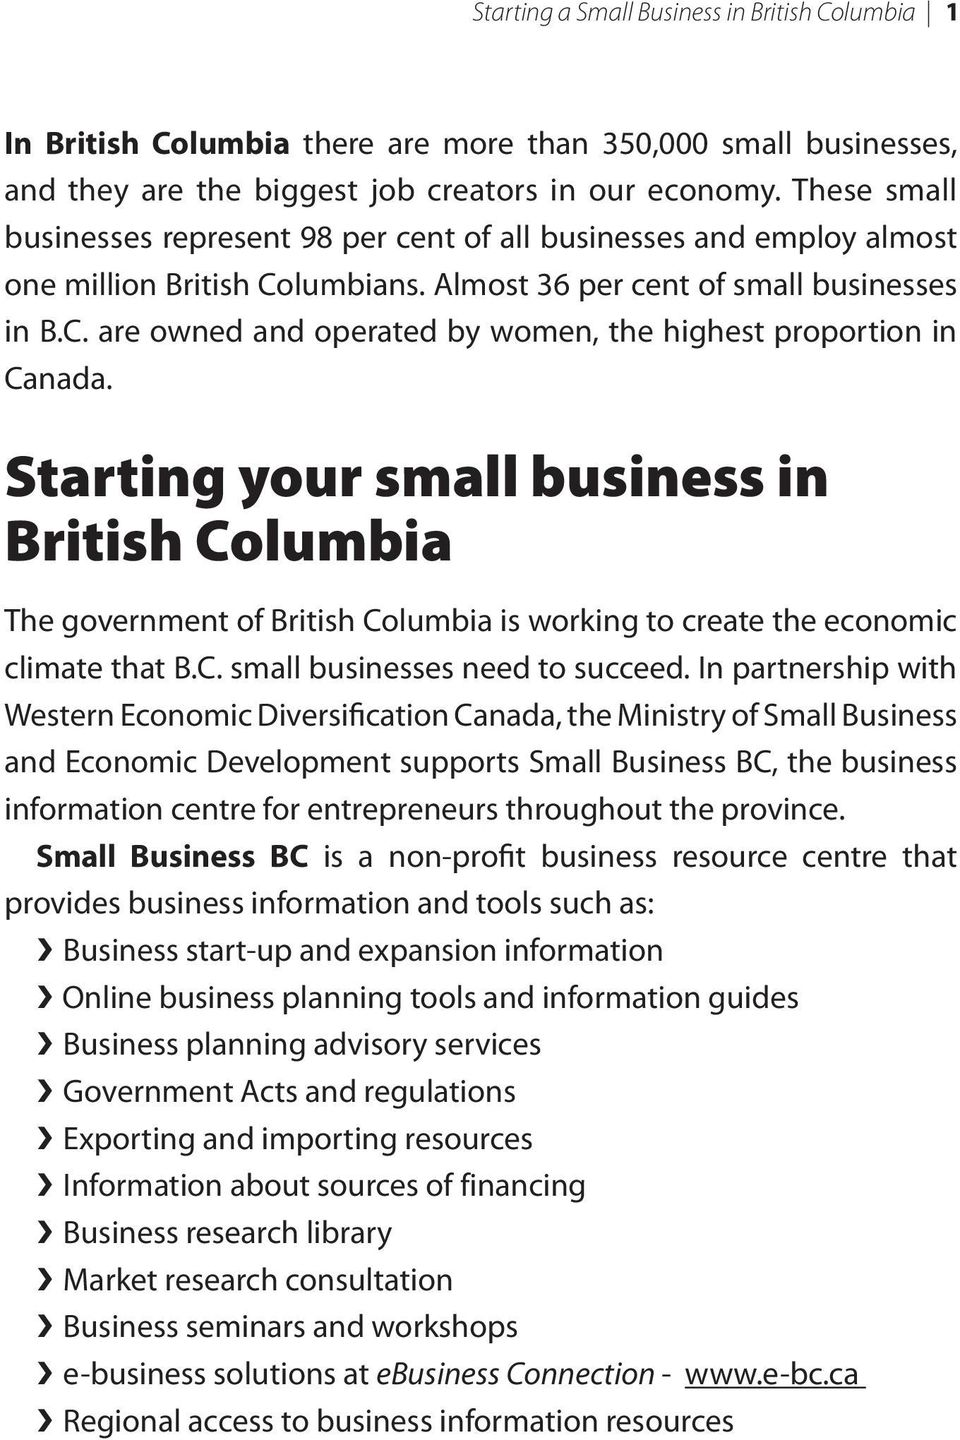 Starting your small business in British Columbia The government of British Columbia is working to create the economic climate that B.C. small businesses need to succeed.